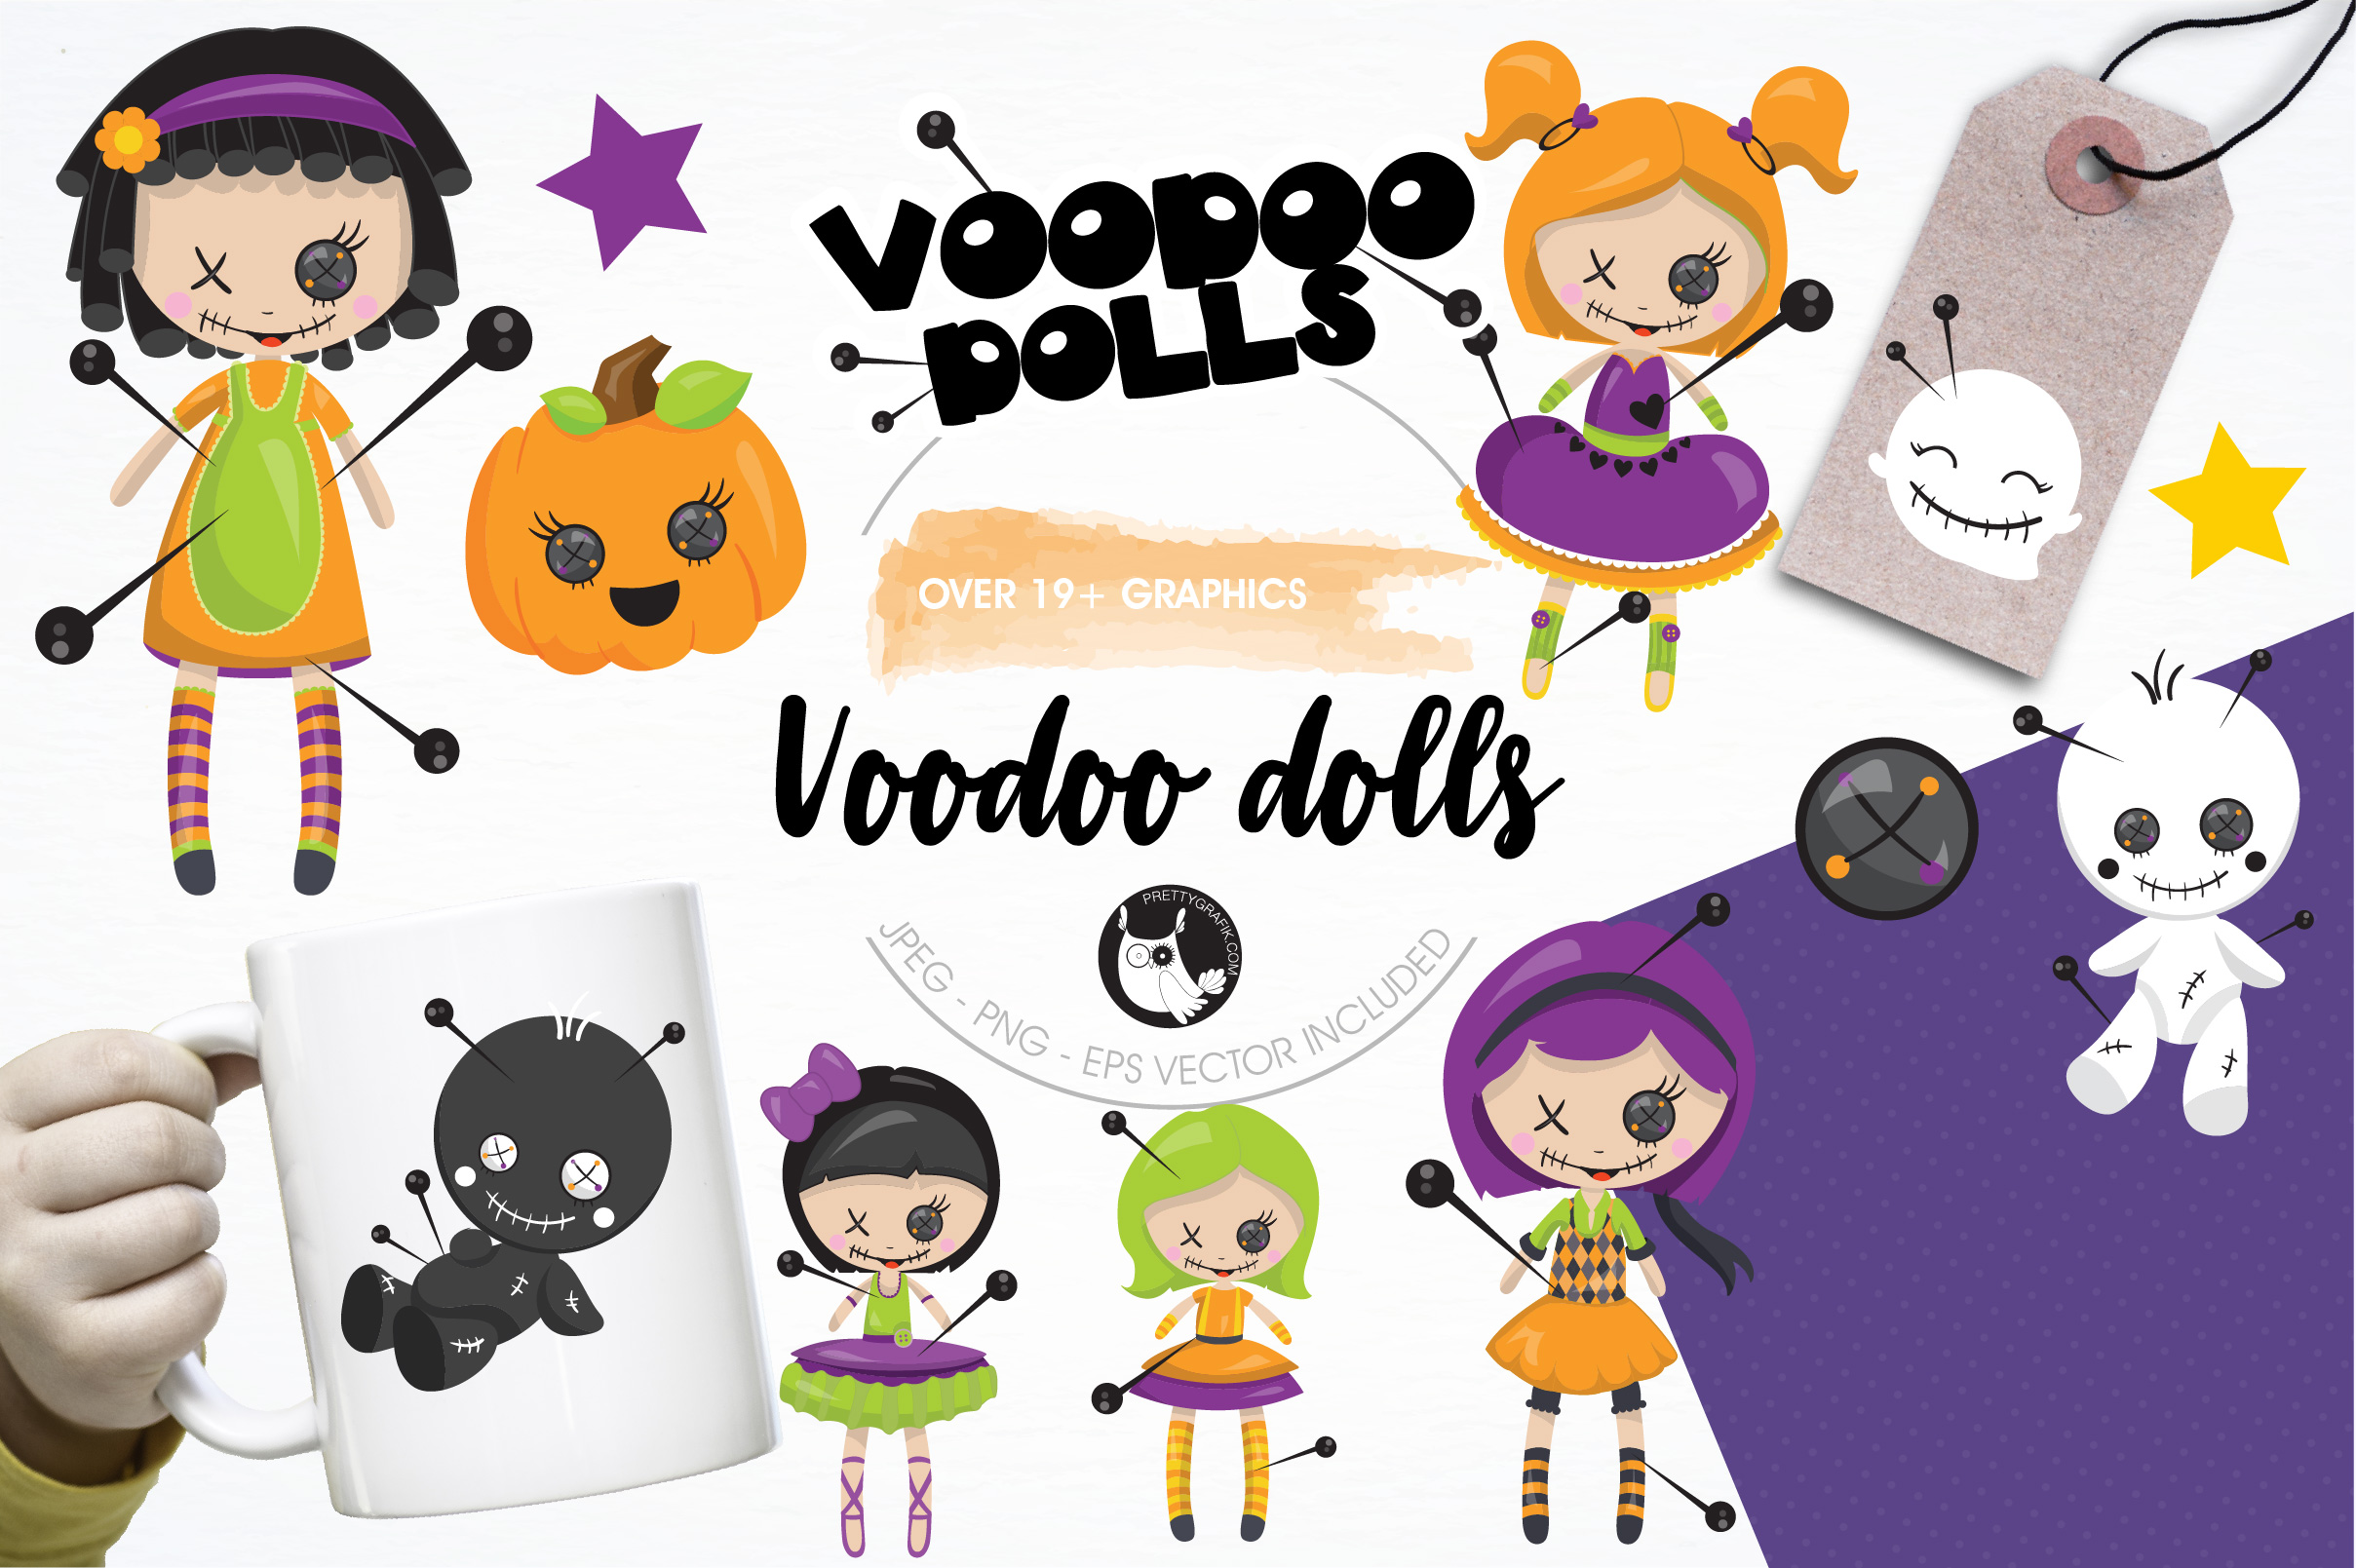 Voodoo dolls graphics and illustrations example image 1